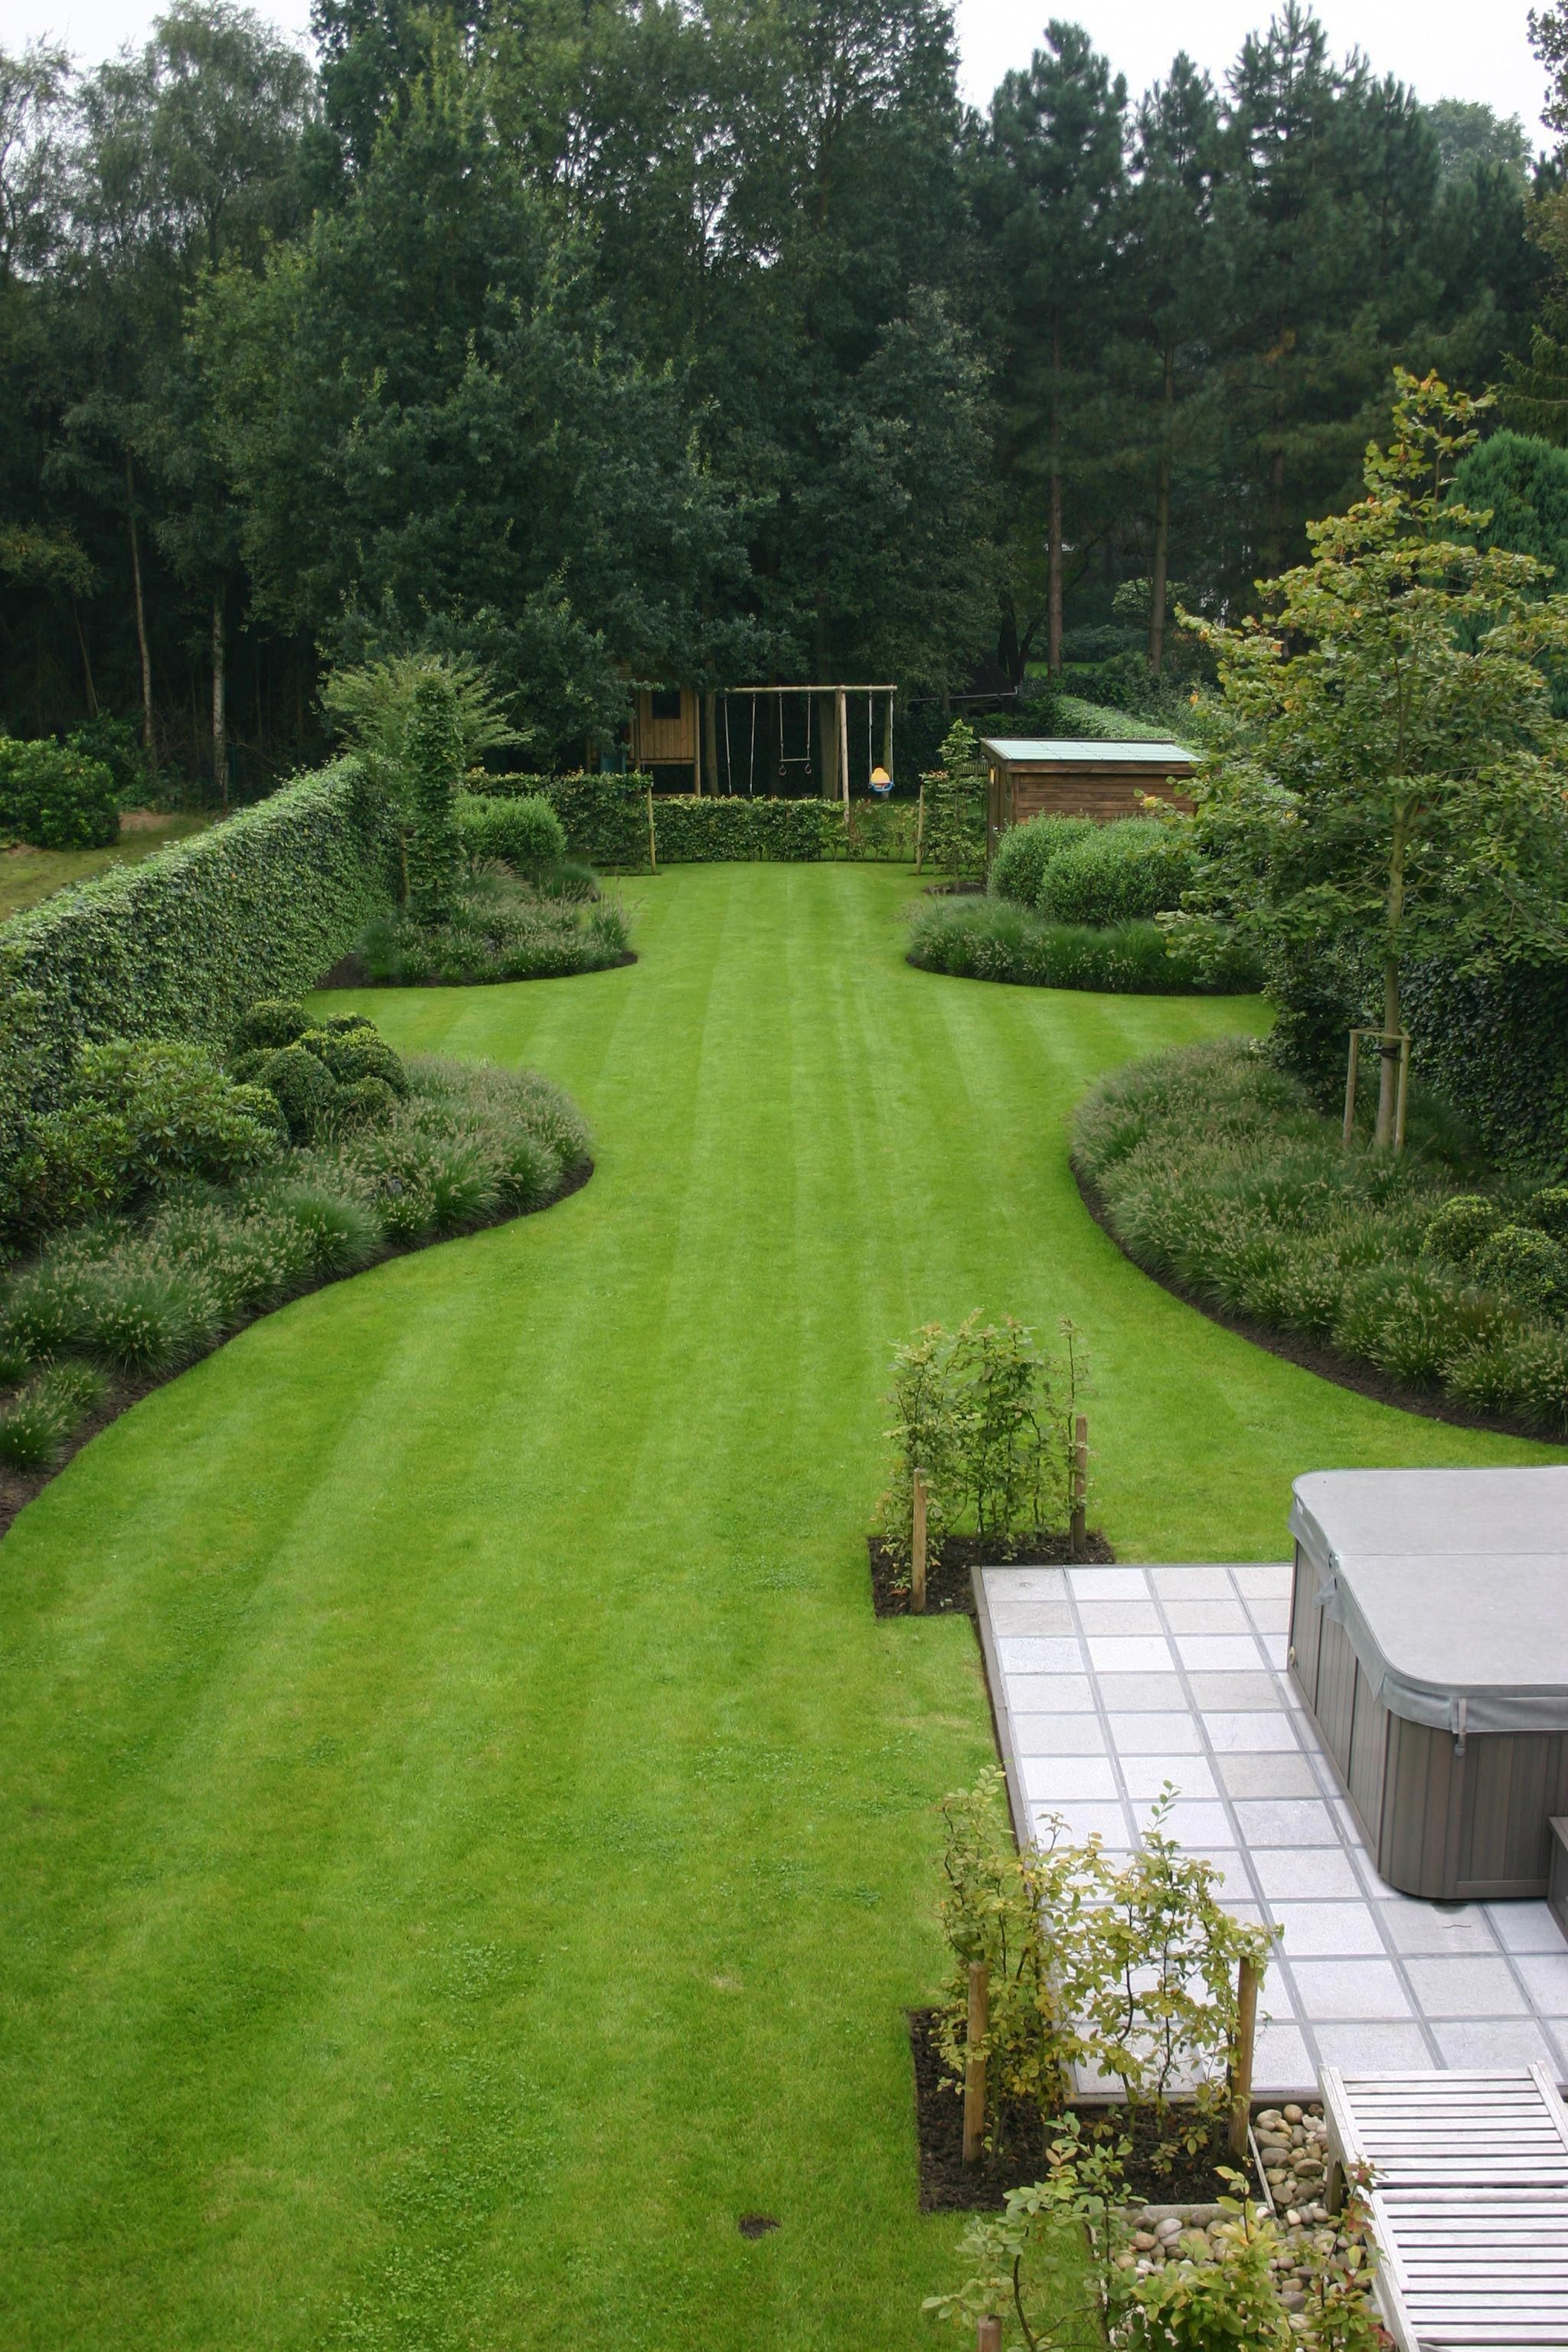 All about backyard landscaping ideas on a budget, small